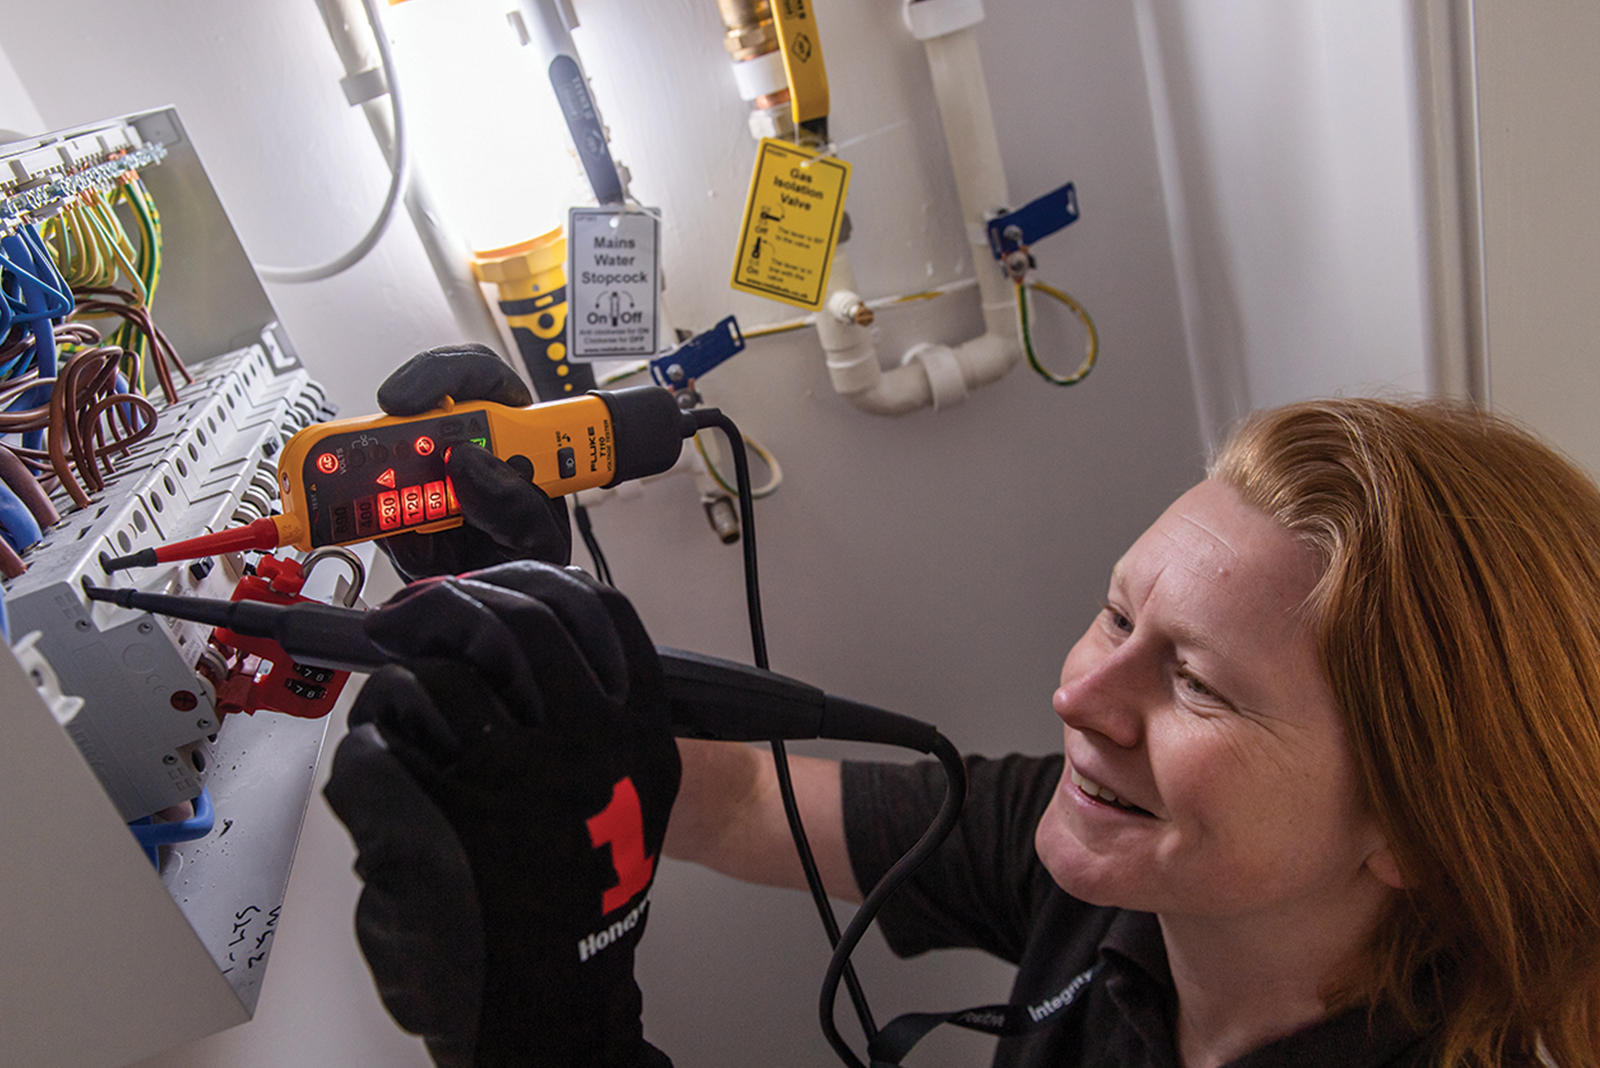 Places For People launches women into Trades Programme – helping increase female representation in the construction sector over the next three years